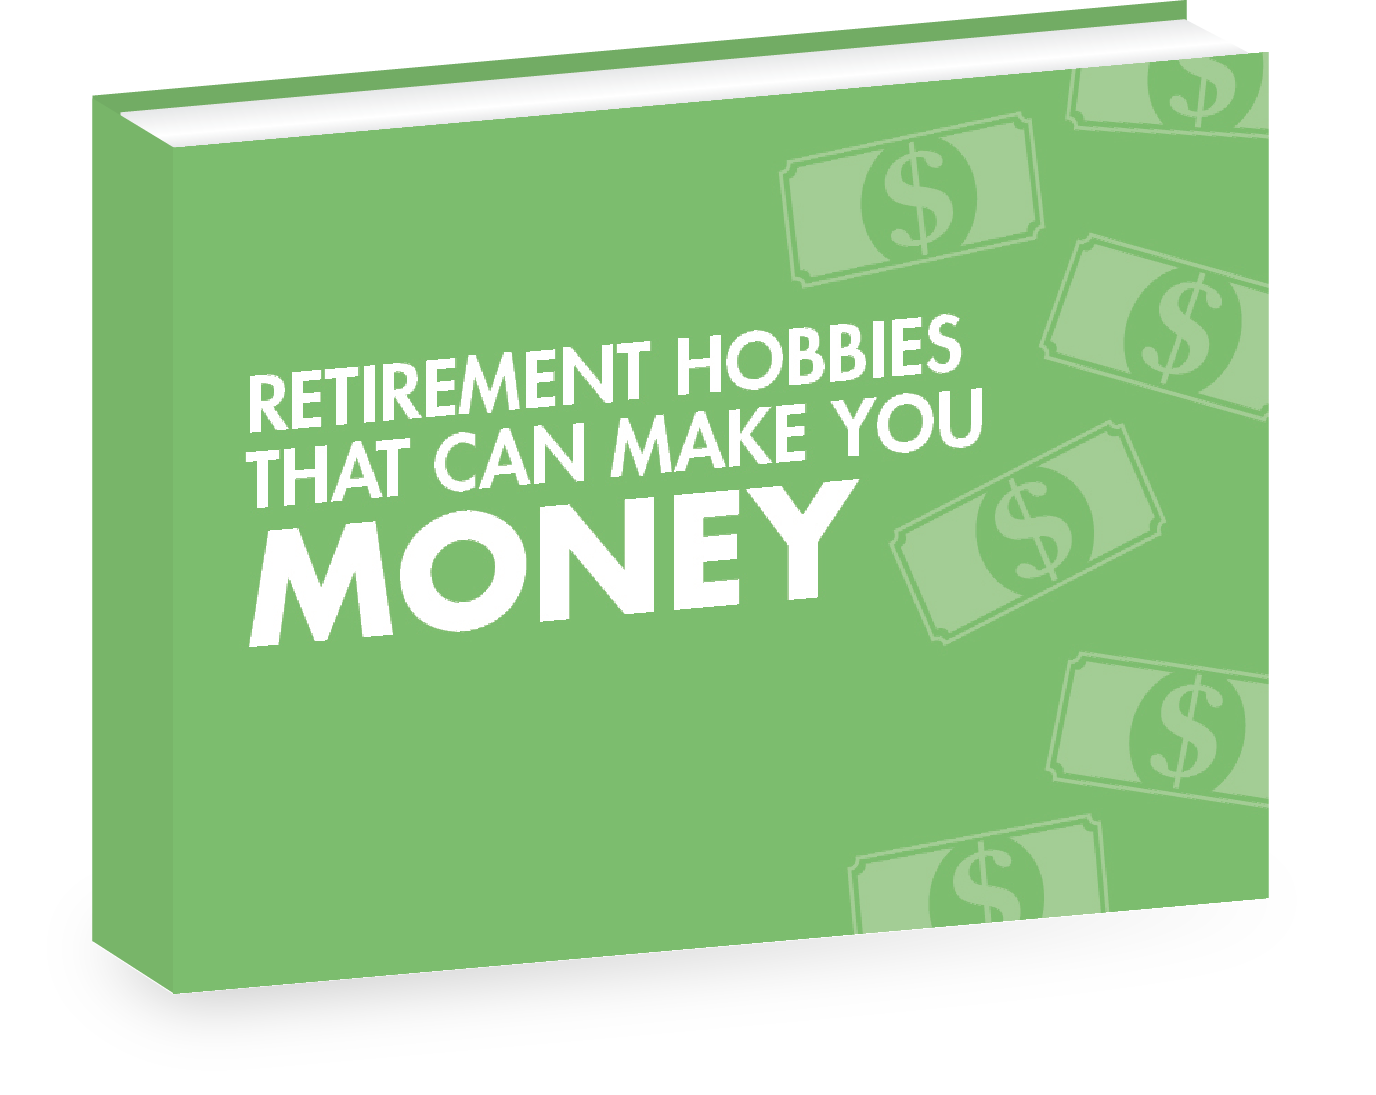 Book_Retirement_hobbies_that_can_make_you_money.png